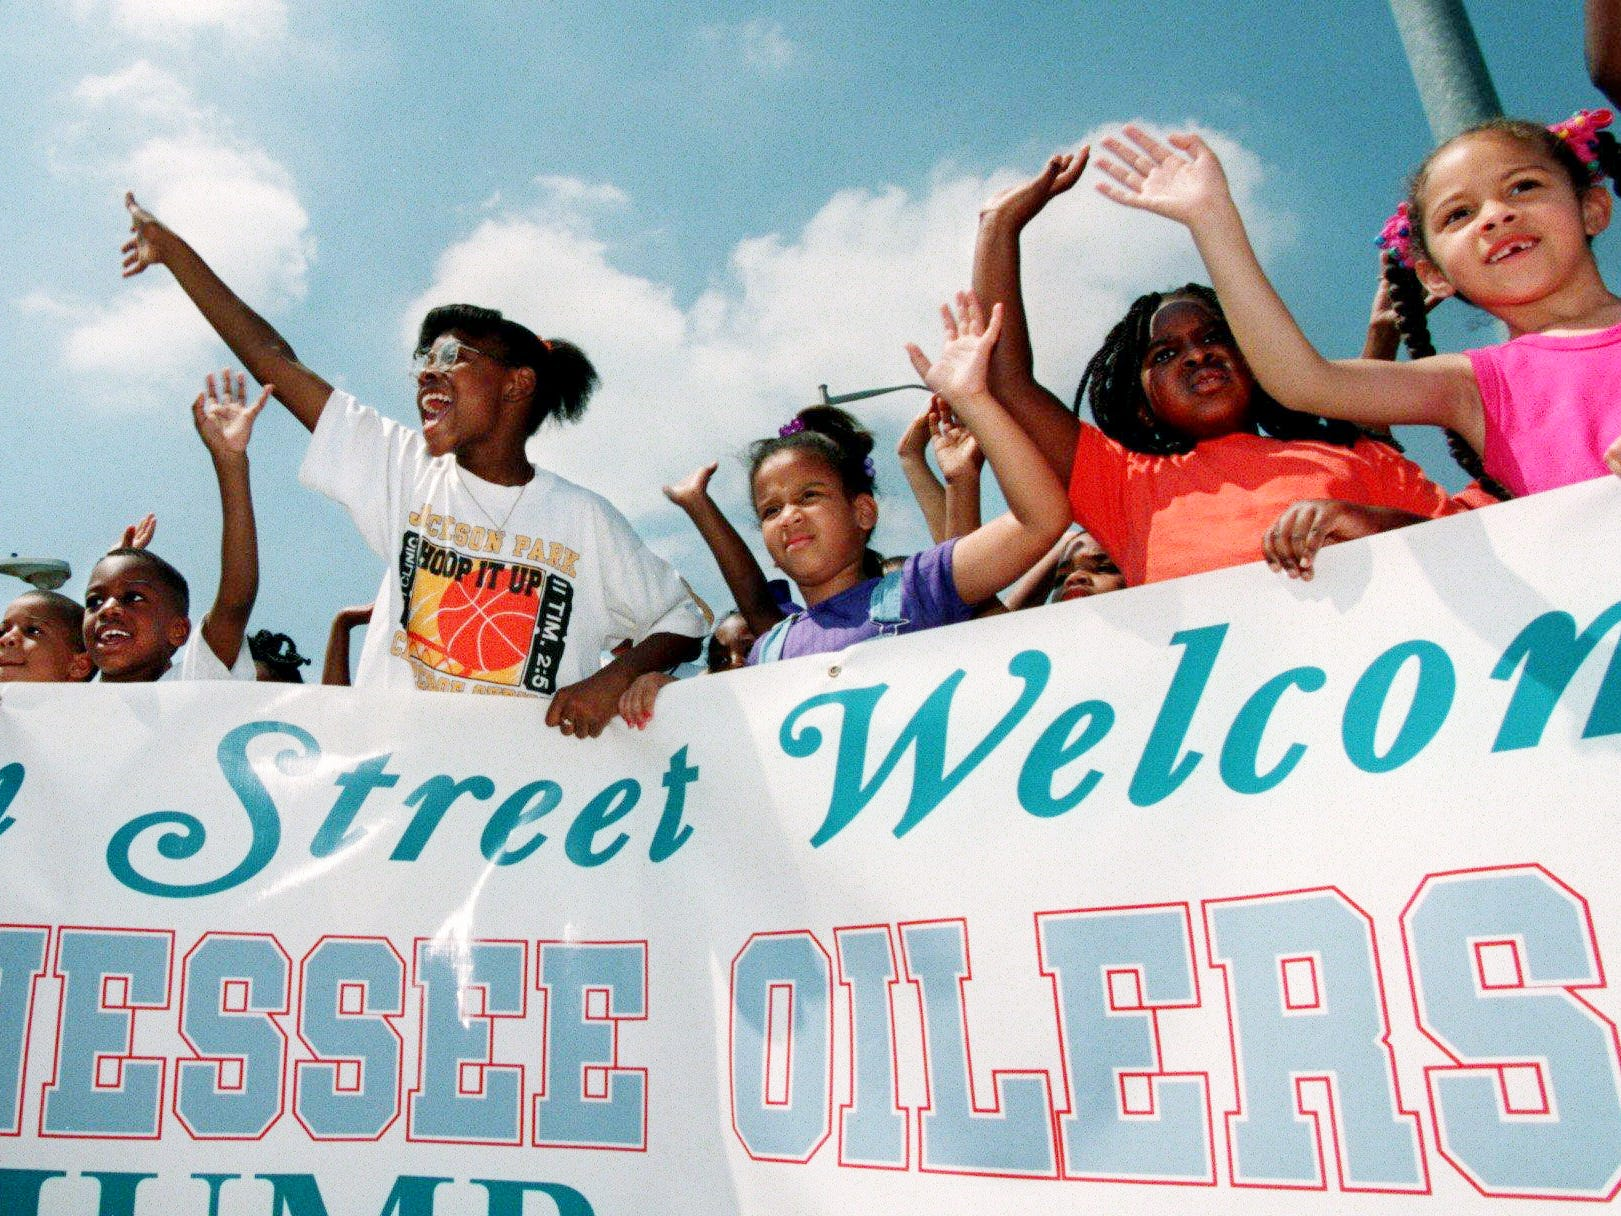 The Tennessee Oilers moving van is greeted by a small pocket of fans at the corner of 23rd Ave. and Jefferson St. July 11, 1997. The vans were moving equipment for the Tennessee Oilers training camp at Tennessee State University, starting July 18th.